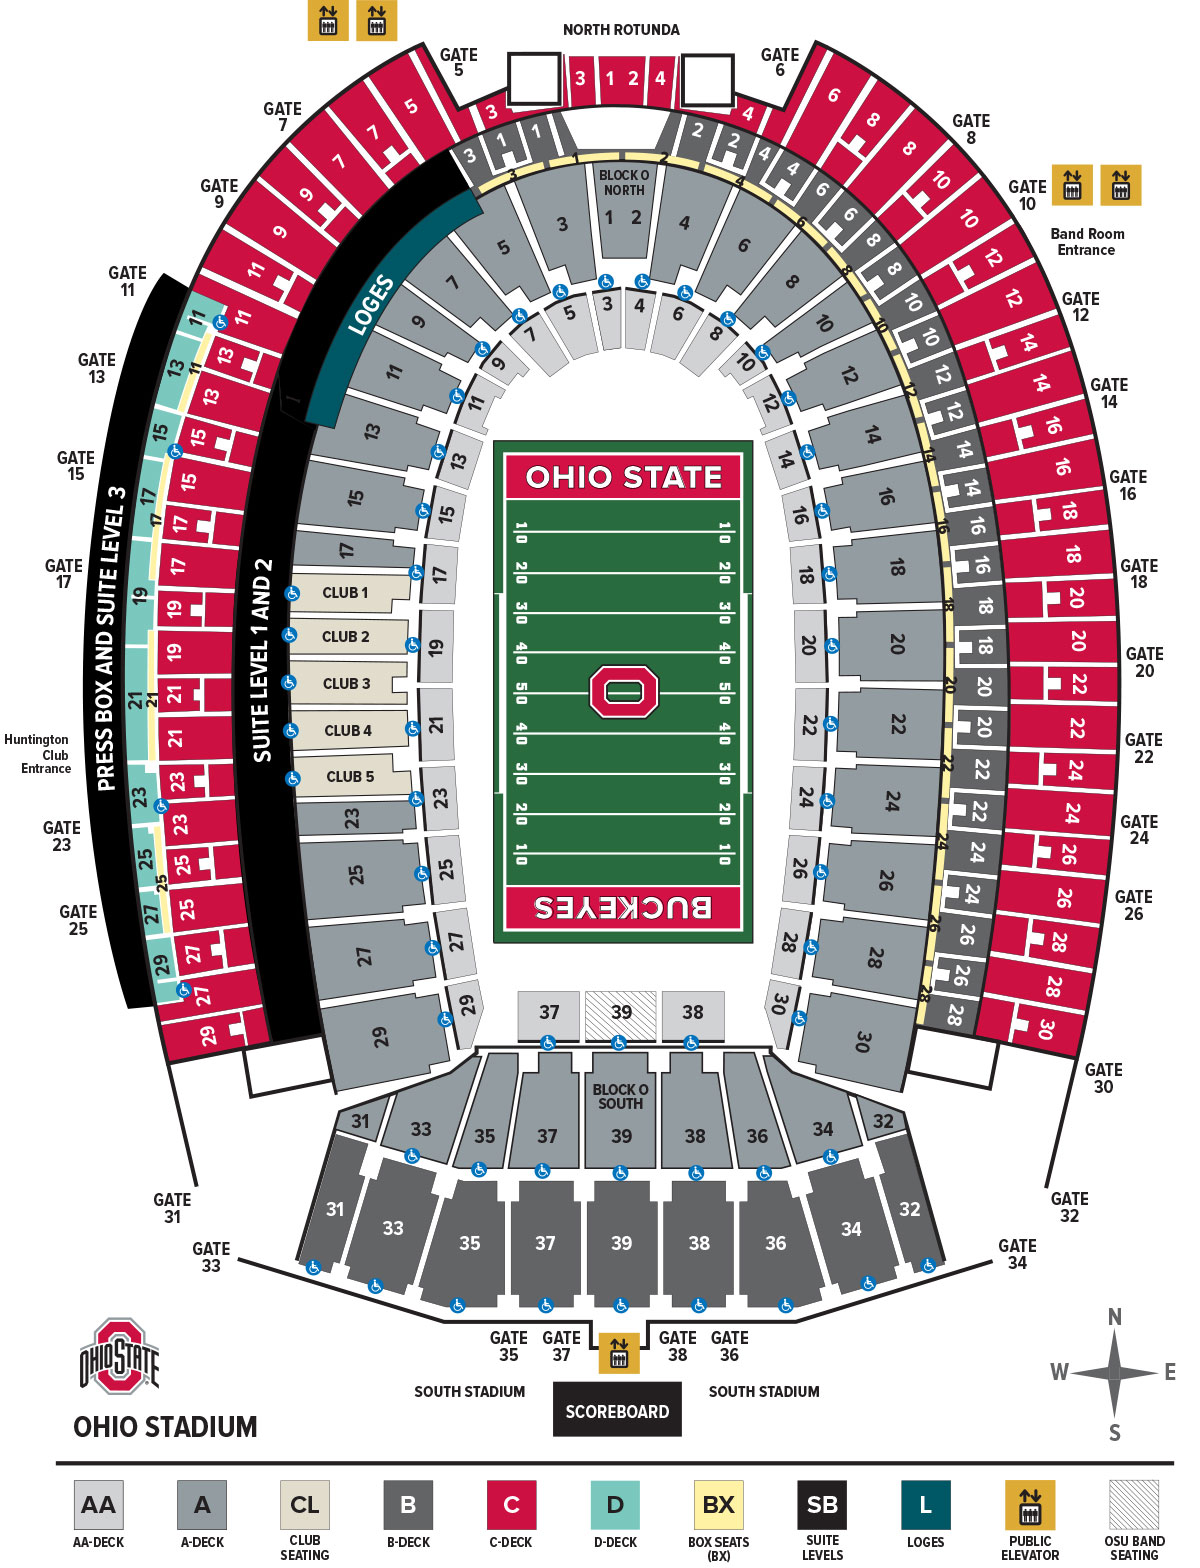 Ohio stadium seating chart ohio state buckeyes